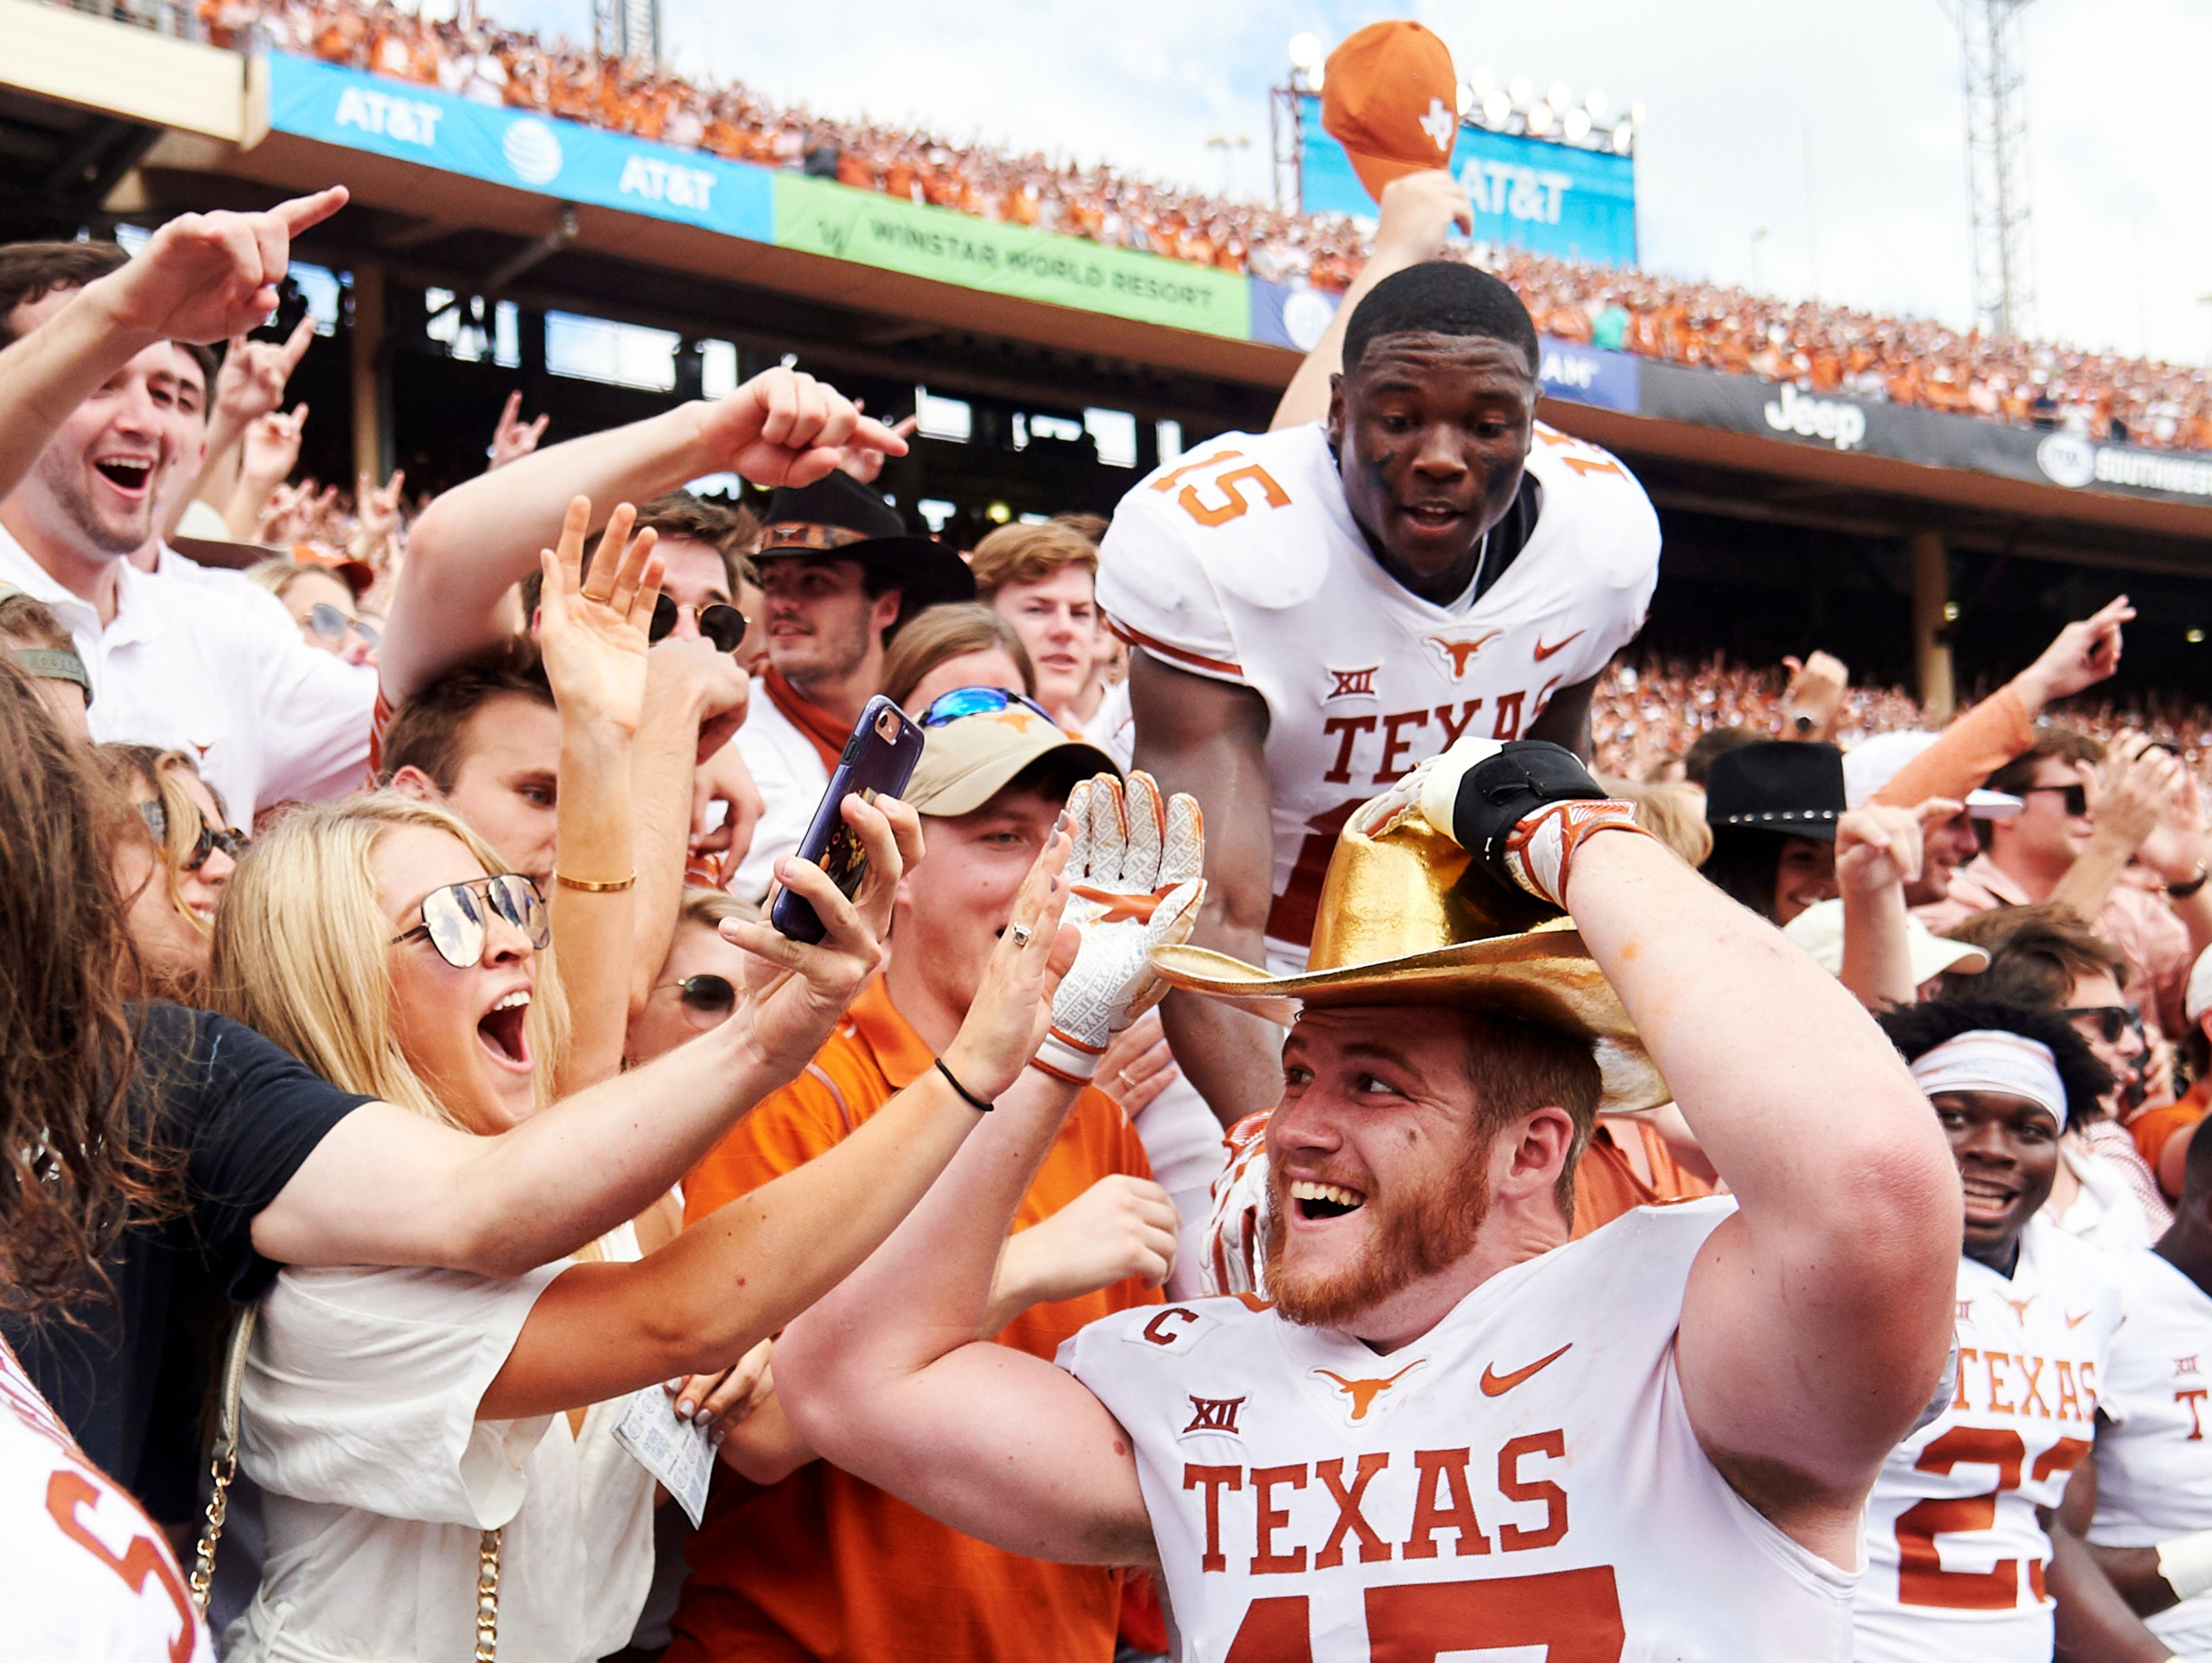 Red River rematch: Texas-OU away from fair for Big 12 title